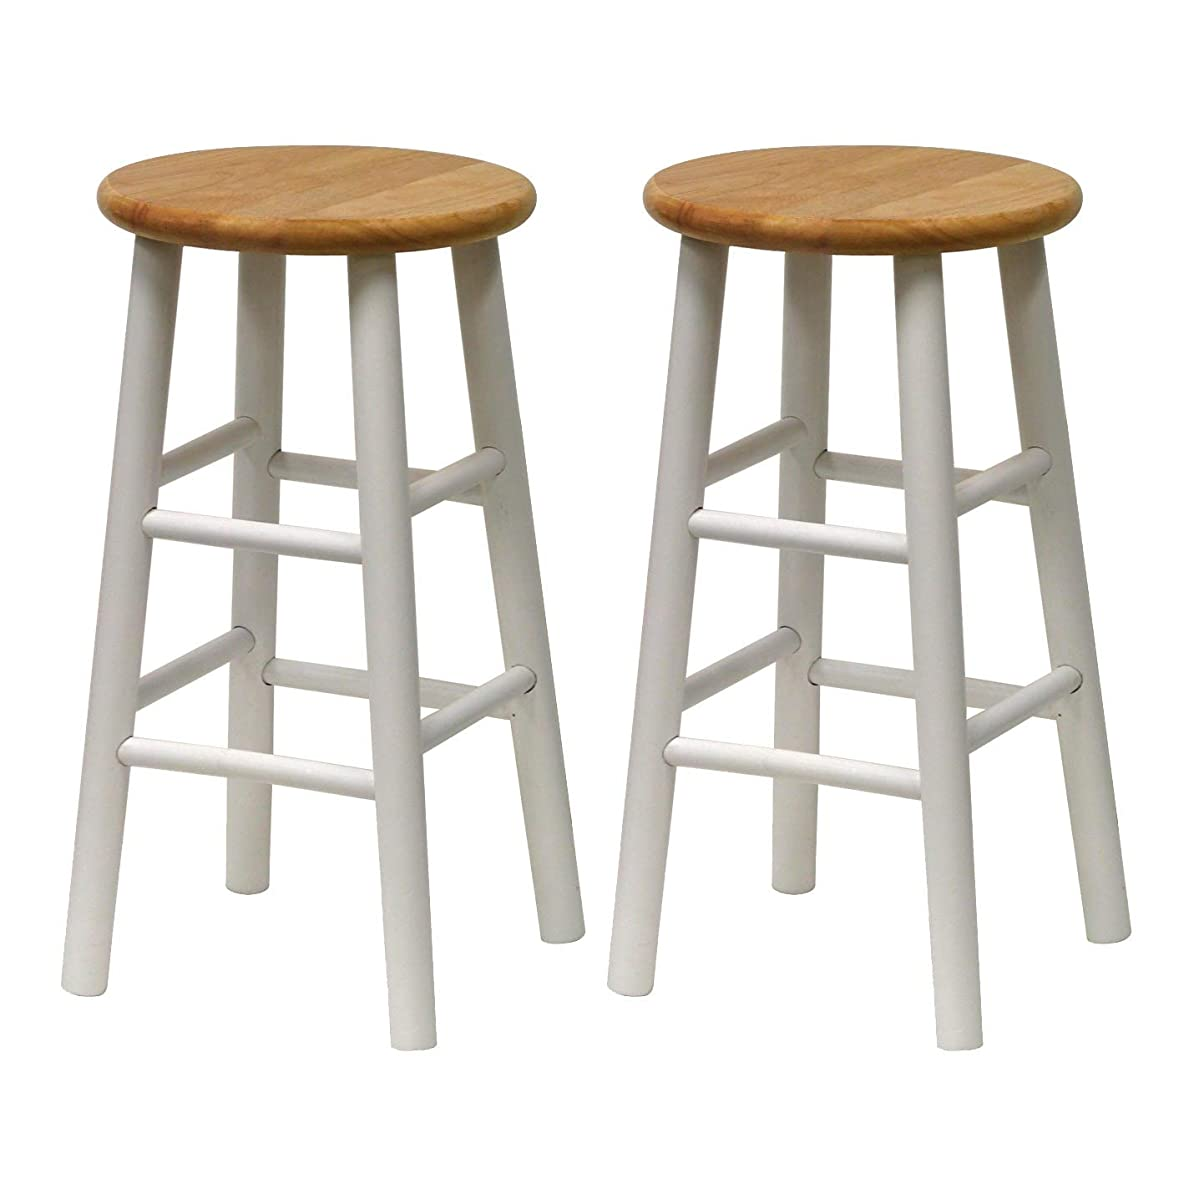 Winsome 53784 Tabby Stool, White